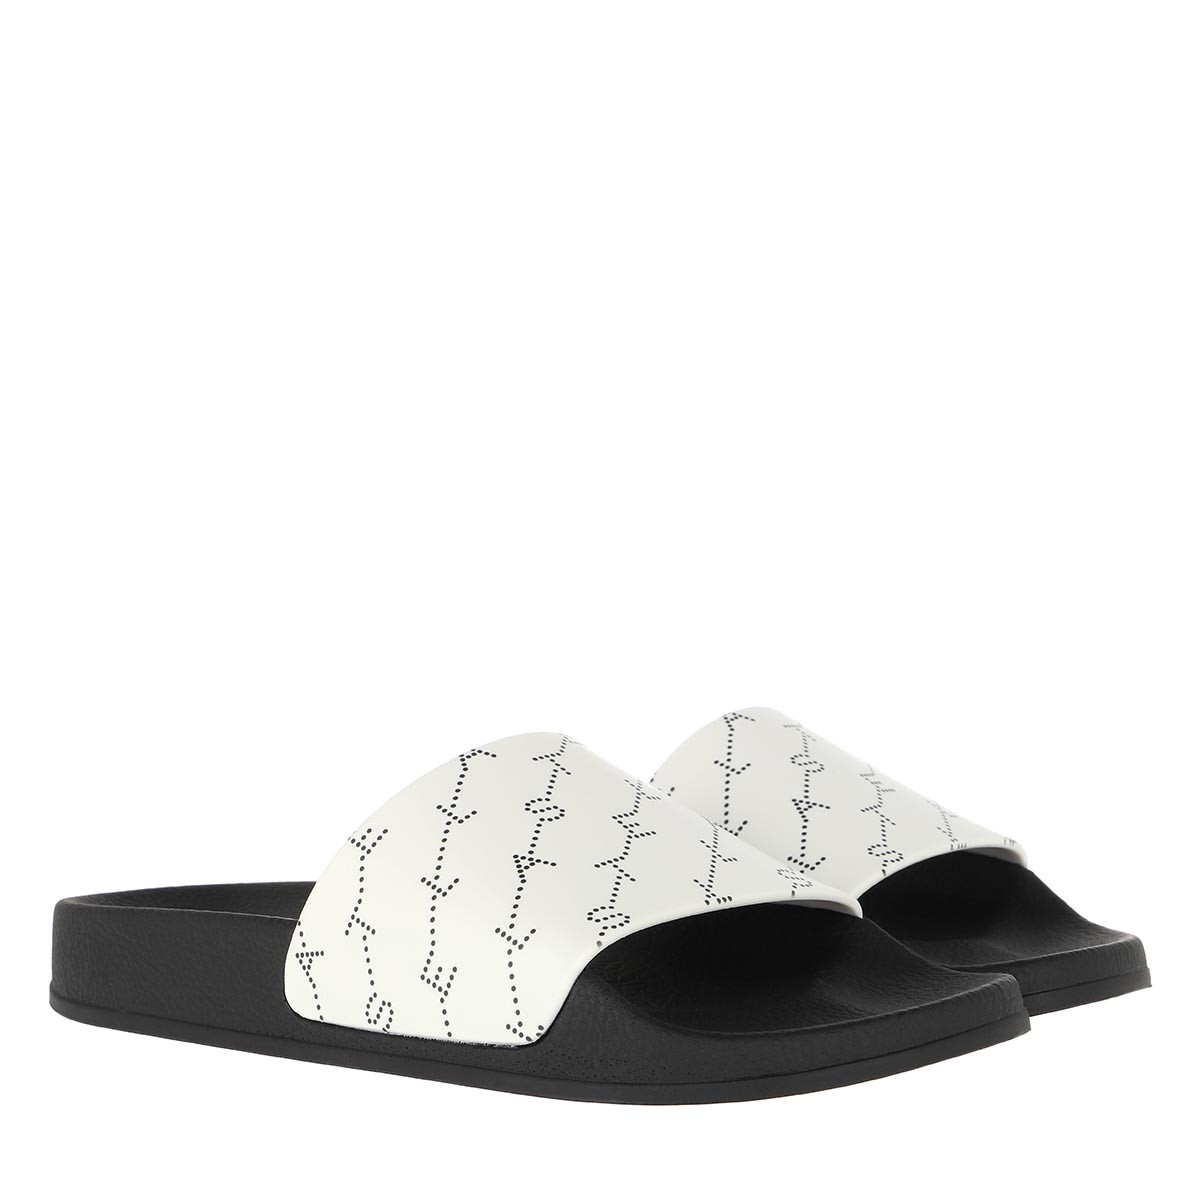 Stella McCartney Schuhe - Monogram Strap Slides White/Black - in weiß - für Damen